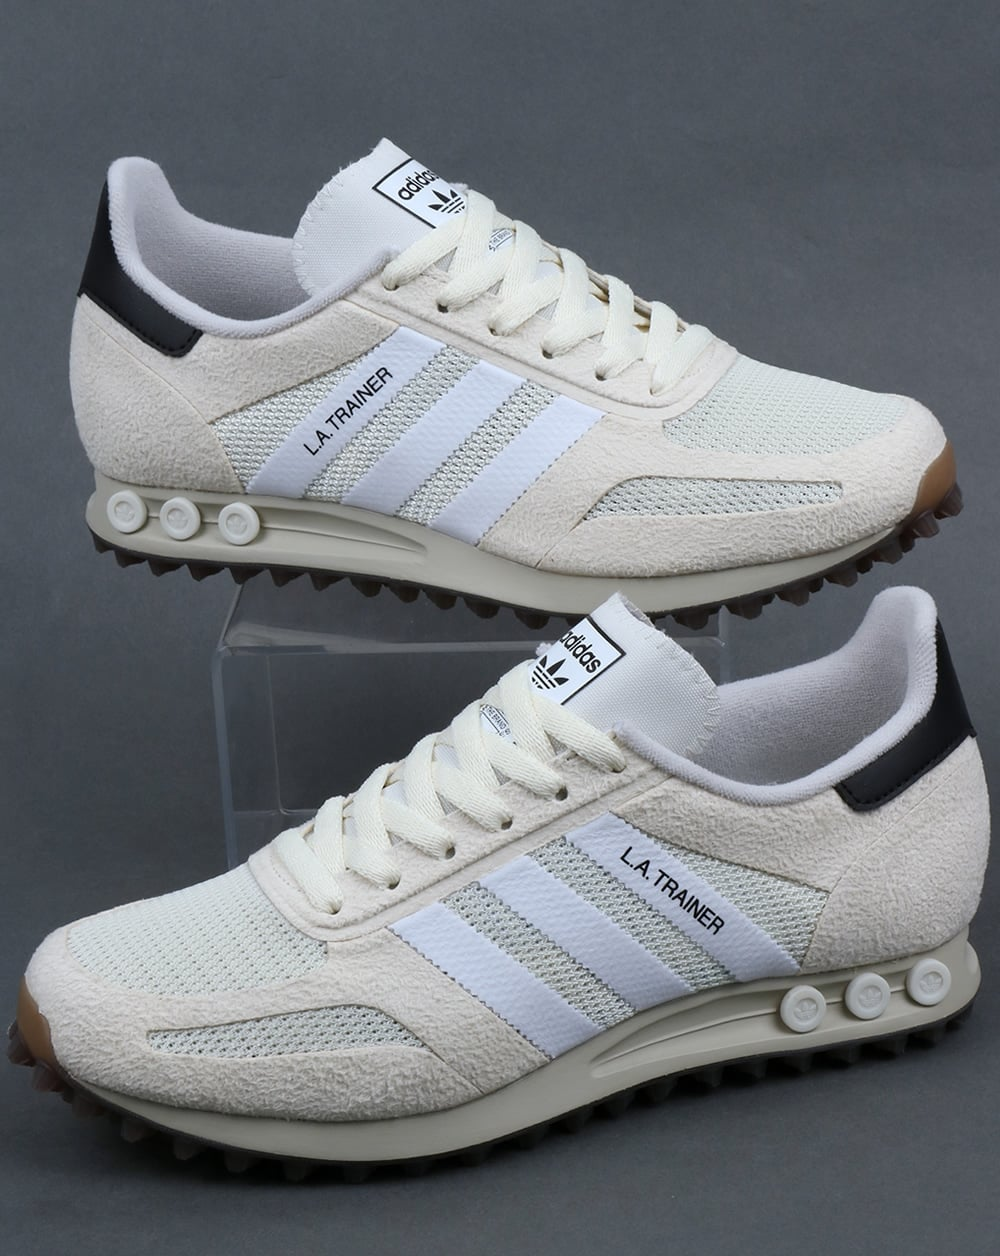 c6b20516be92 adidas la trainer white